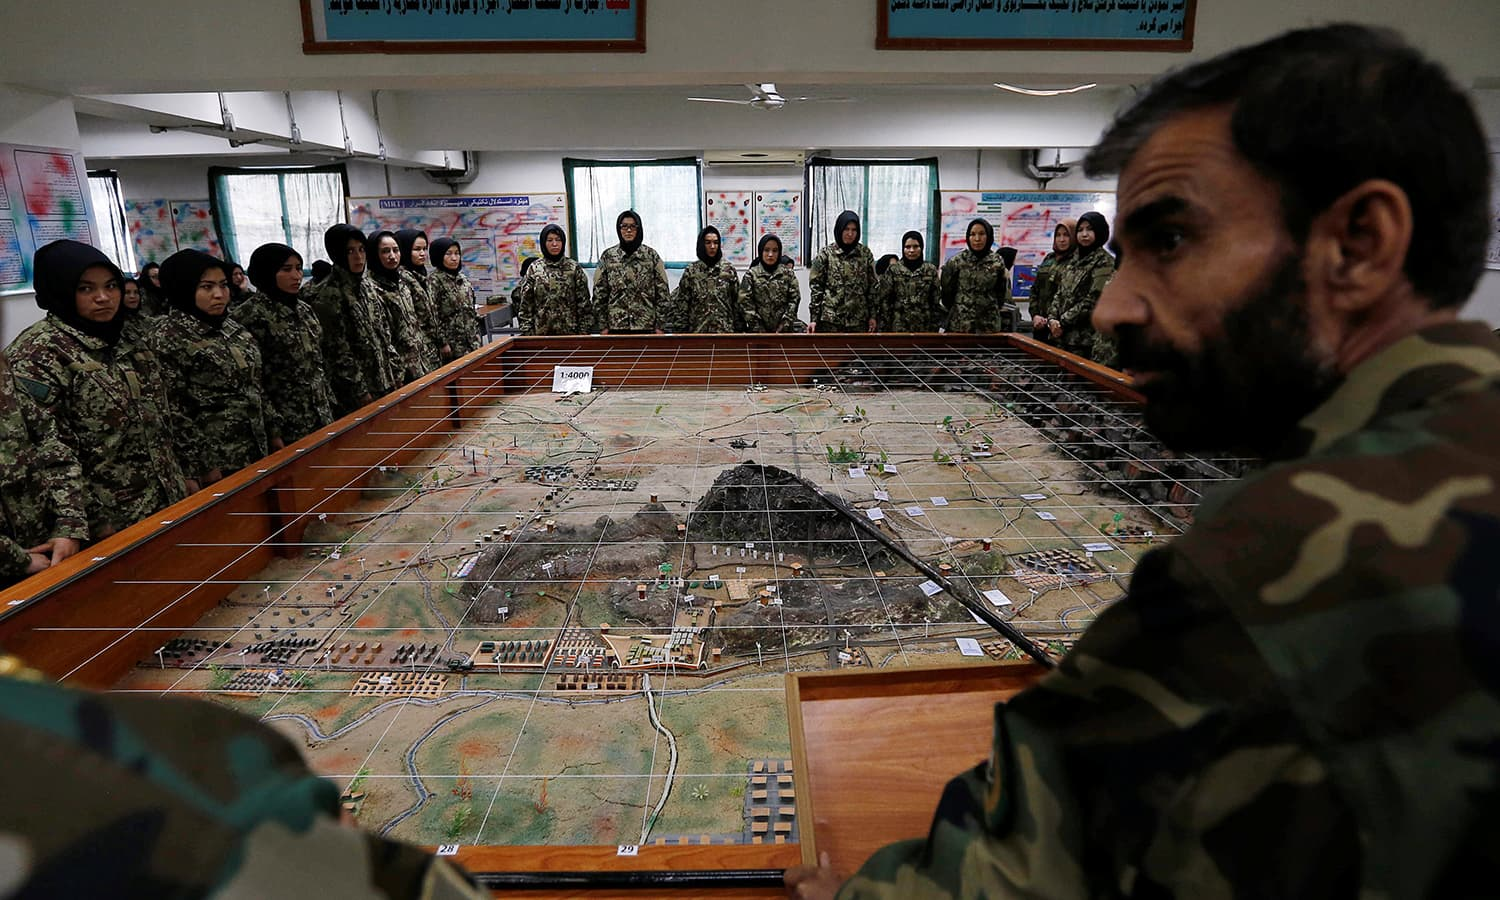 Afghan National Army (ANA) soldiers attend a lesson in a classroom at the Kabul Military Training Centre (KMTC) ─Reuters